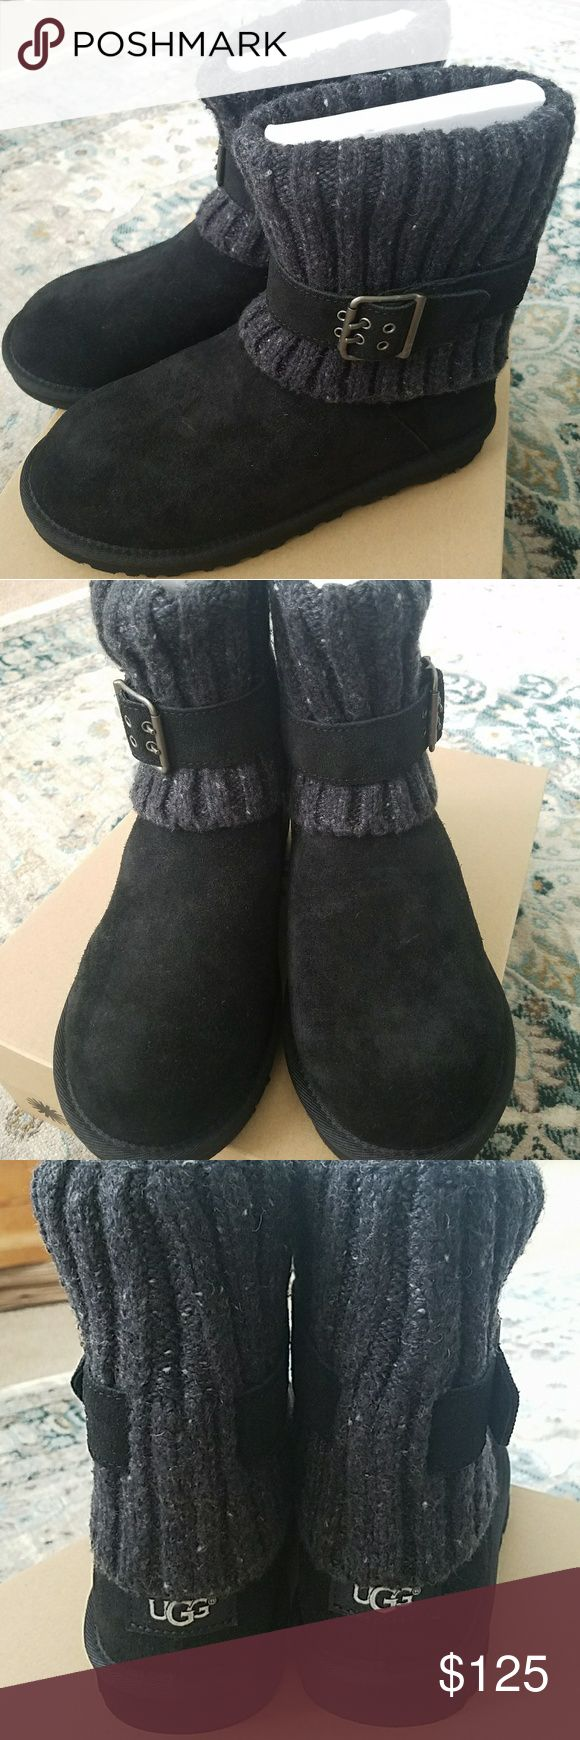 """Ugg Australia Cambridge Women Black Winter Boot The Ugg Australia Cambridge Boots feature a Suede upper with a Round Toe . The Man-Made outsole lends lasting traction and wear.  1003175W/BLKBrand Color: Blk (Main Color: Black)Material: SuedeMeasurements: Shaft measures 7"""", Circumference measures 12"""" and 1"""" heelWidth: B(M) based on size 10 . These are size 6 . Cones I'm original UGG box ! UGG Shoes Winter & Rain Boots"""